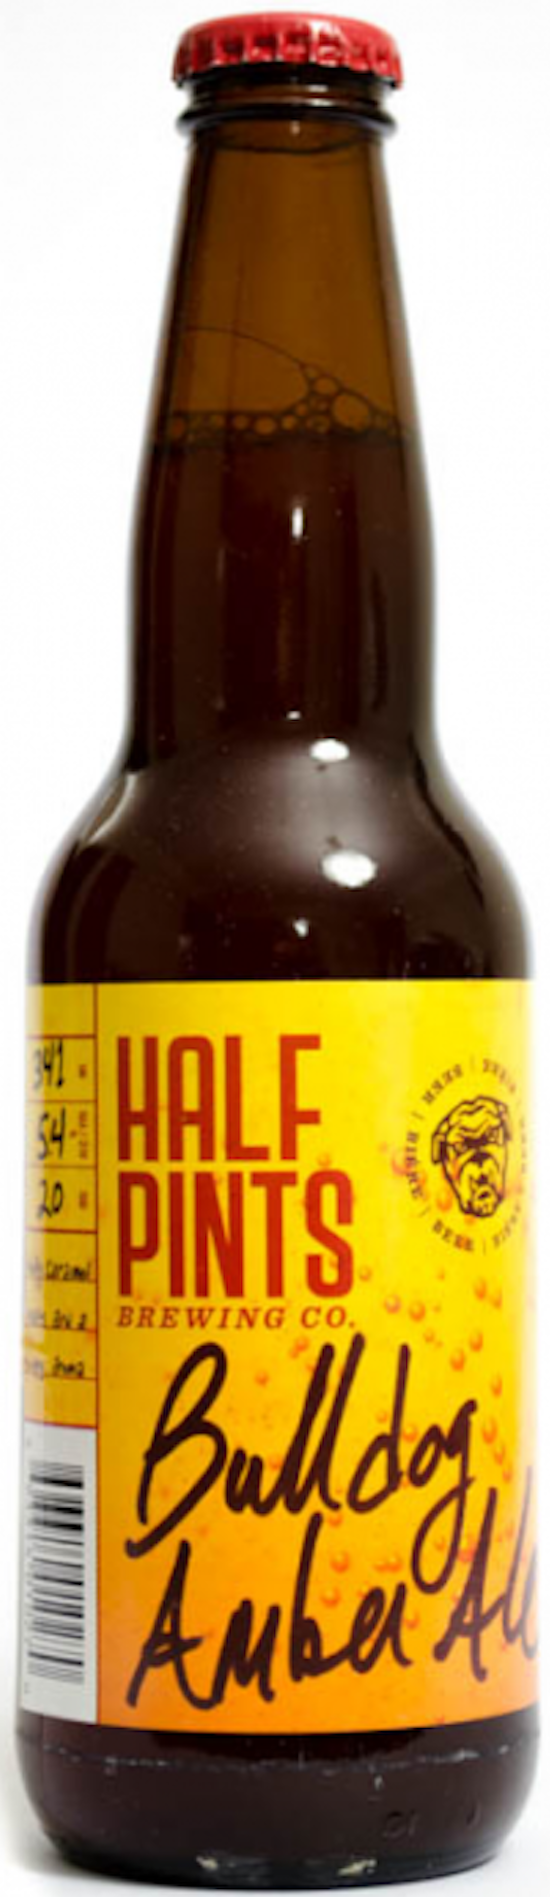 half-pints-brewing-co-bulldog-amber-ale_1467221074